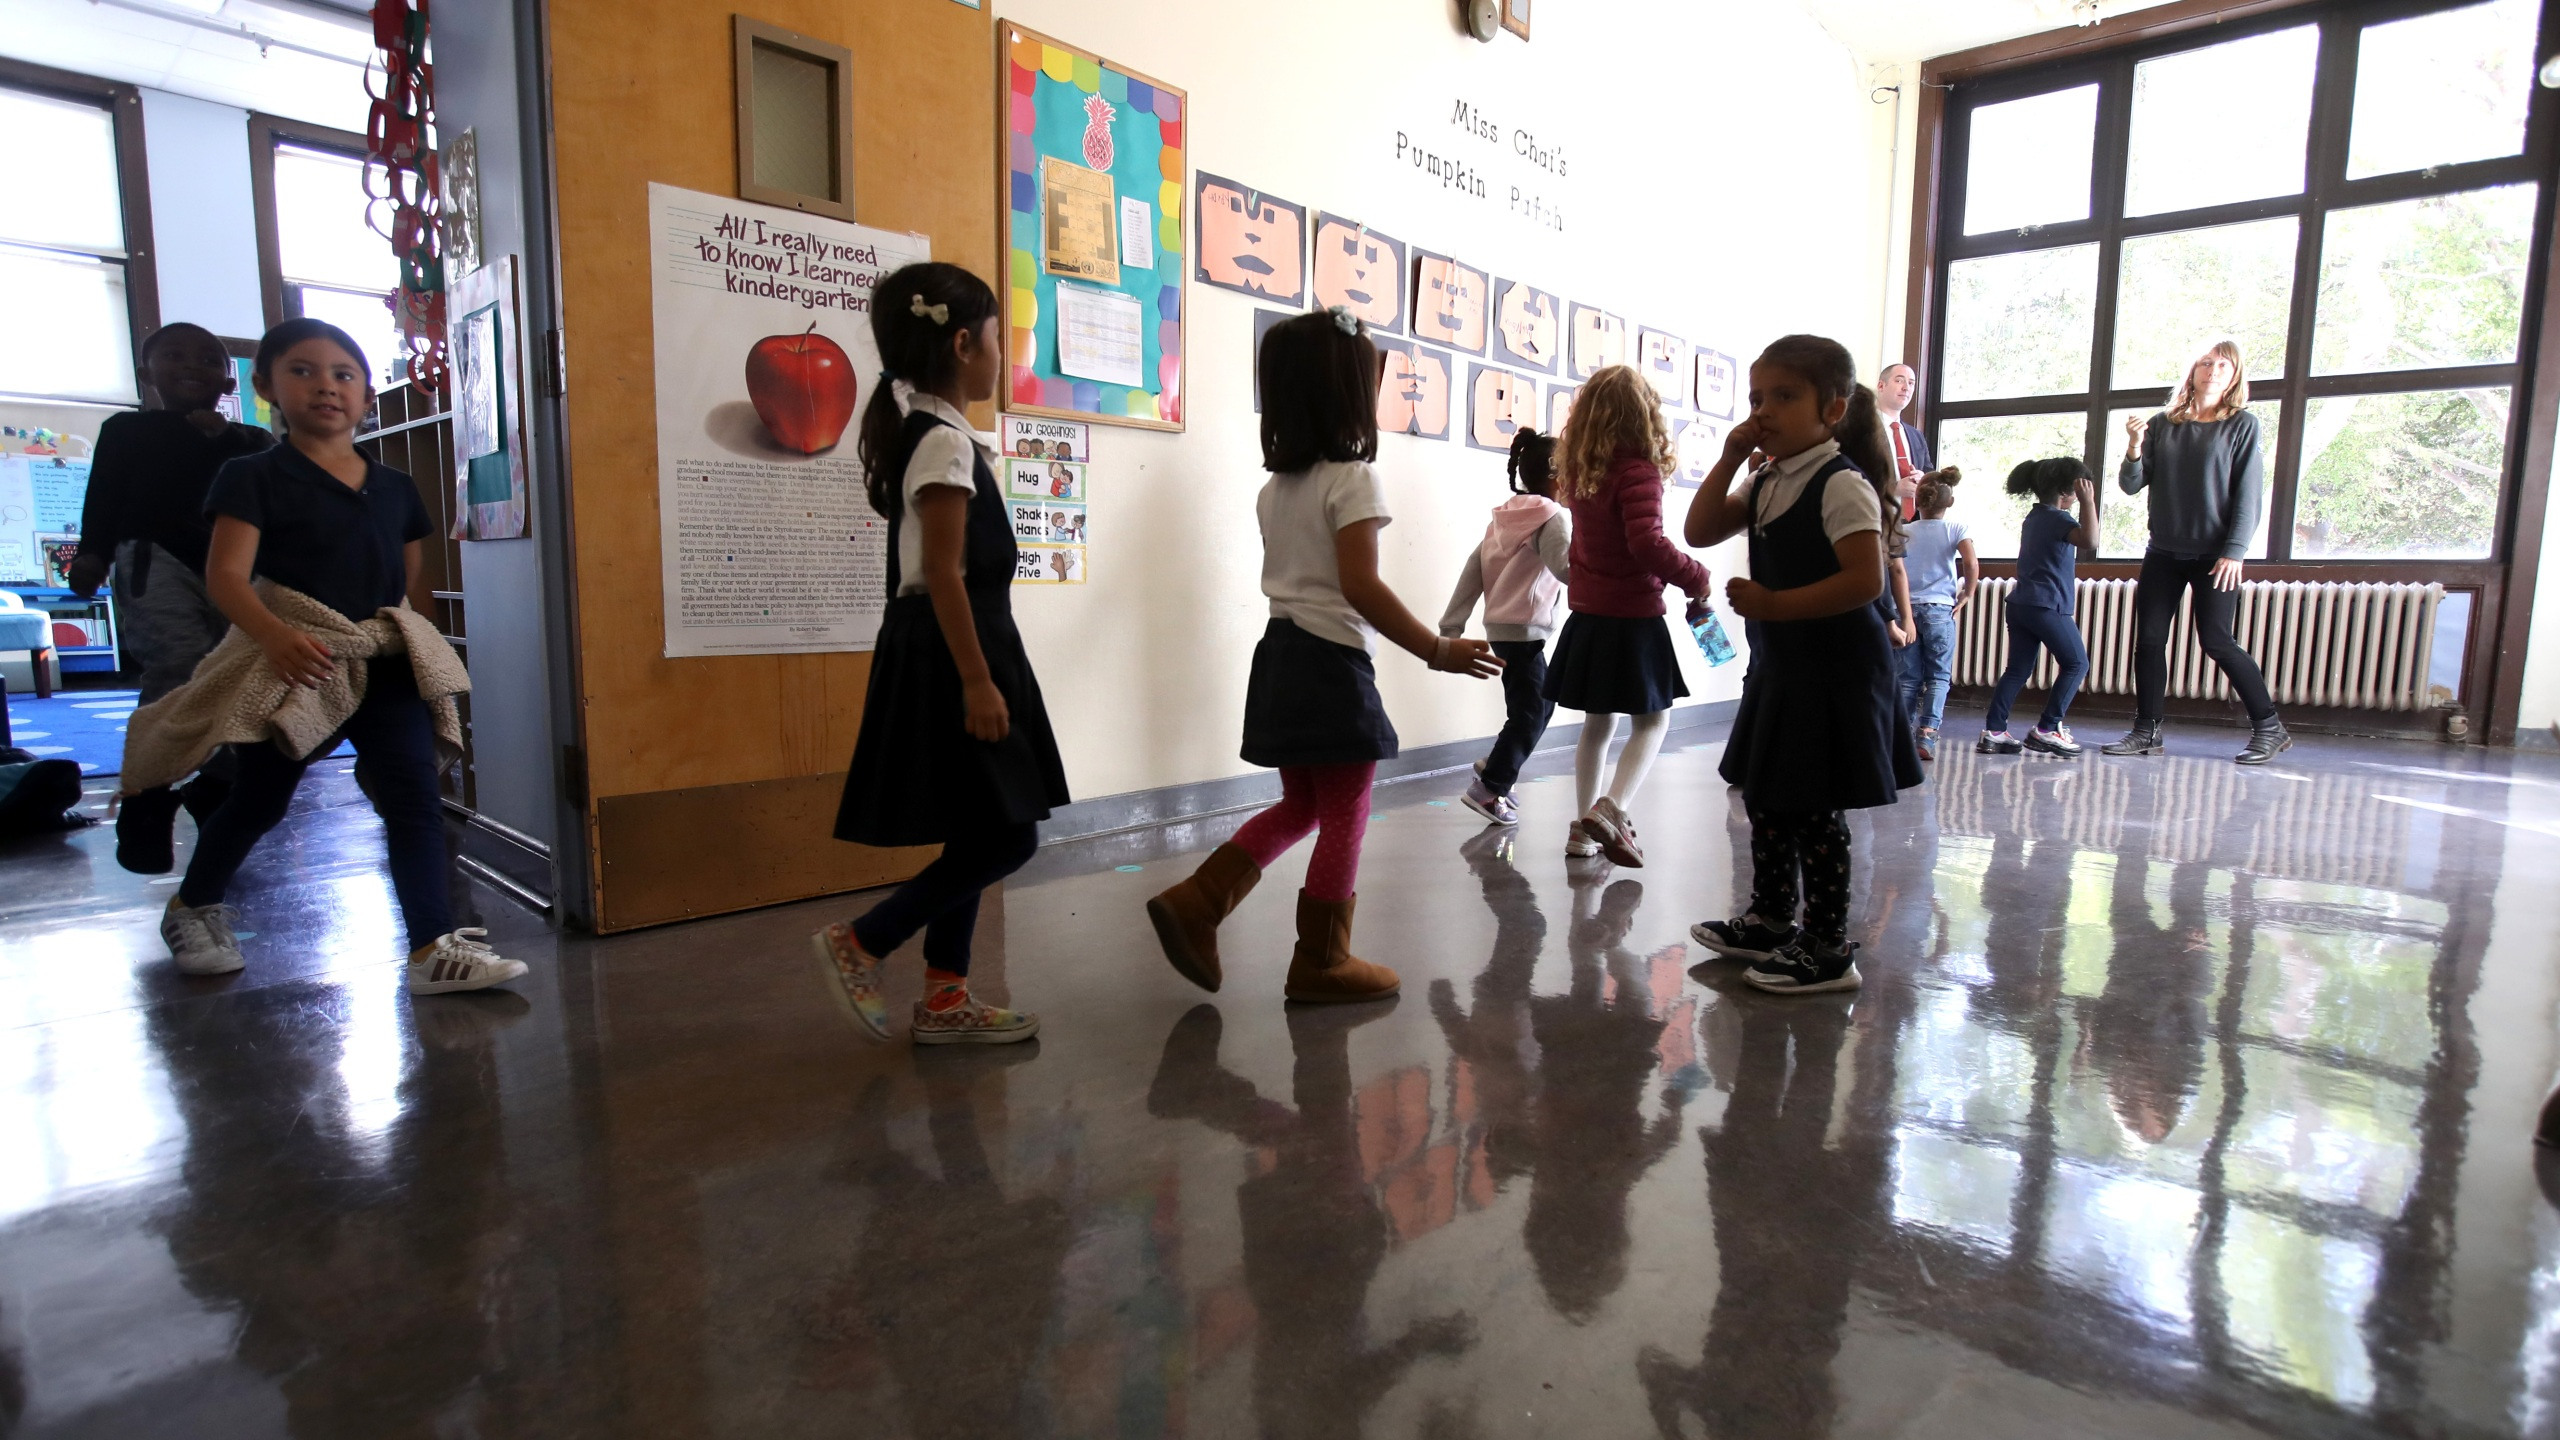 Rosa Parks Elementary School students in San Francisco walk through the campus during an earthquake drill on Oct. 17, 2019. (Justin Sullivan/Getty Images)